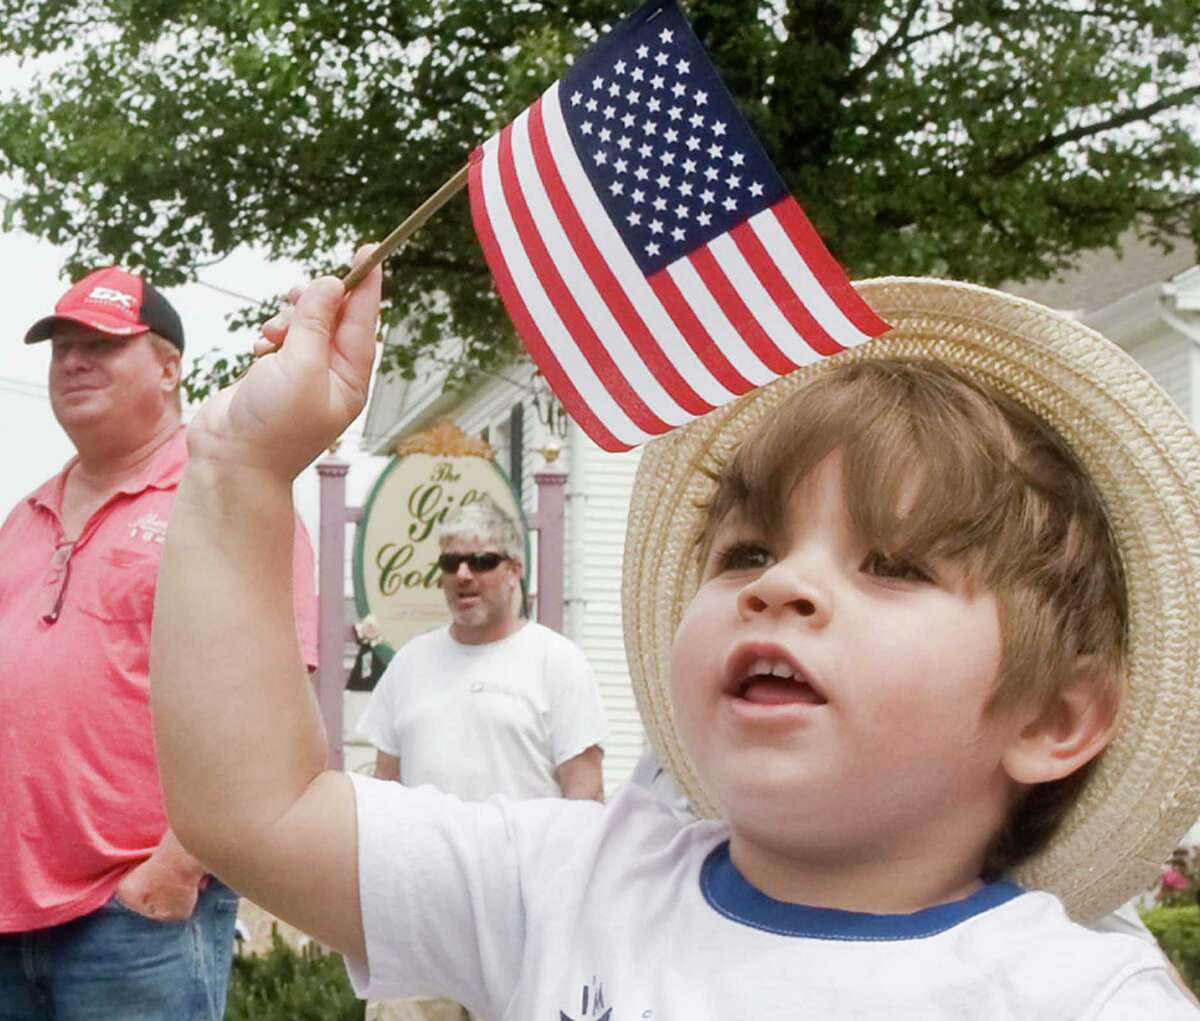 Memorial Day Facts Memorial Day is sometimes confused with Veterans Day. Veterans Day honors all United States military veterans, while Memorial Day honors those who died while serving.